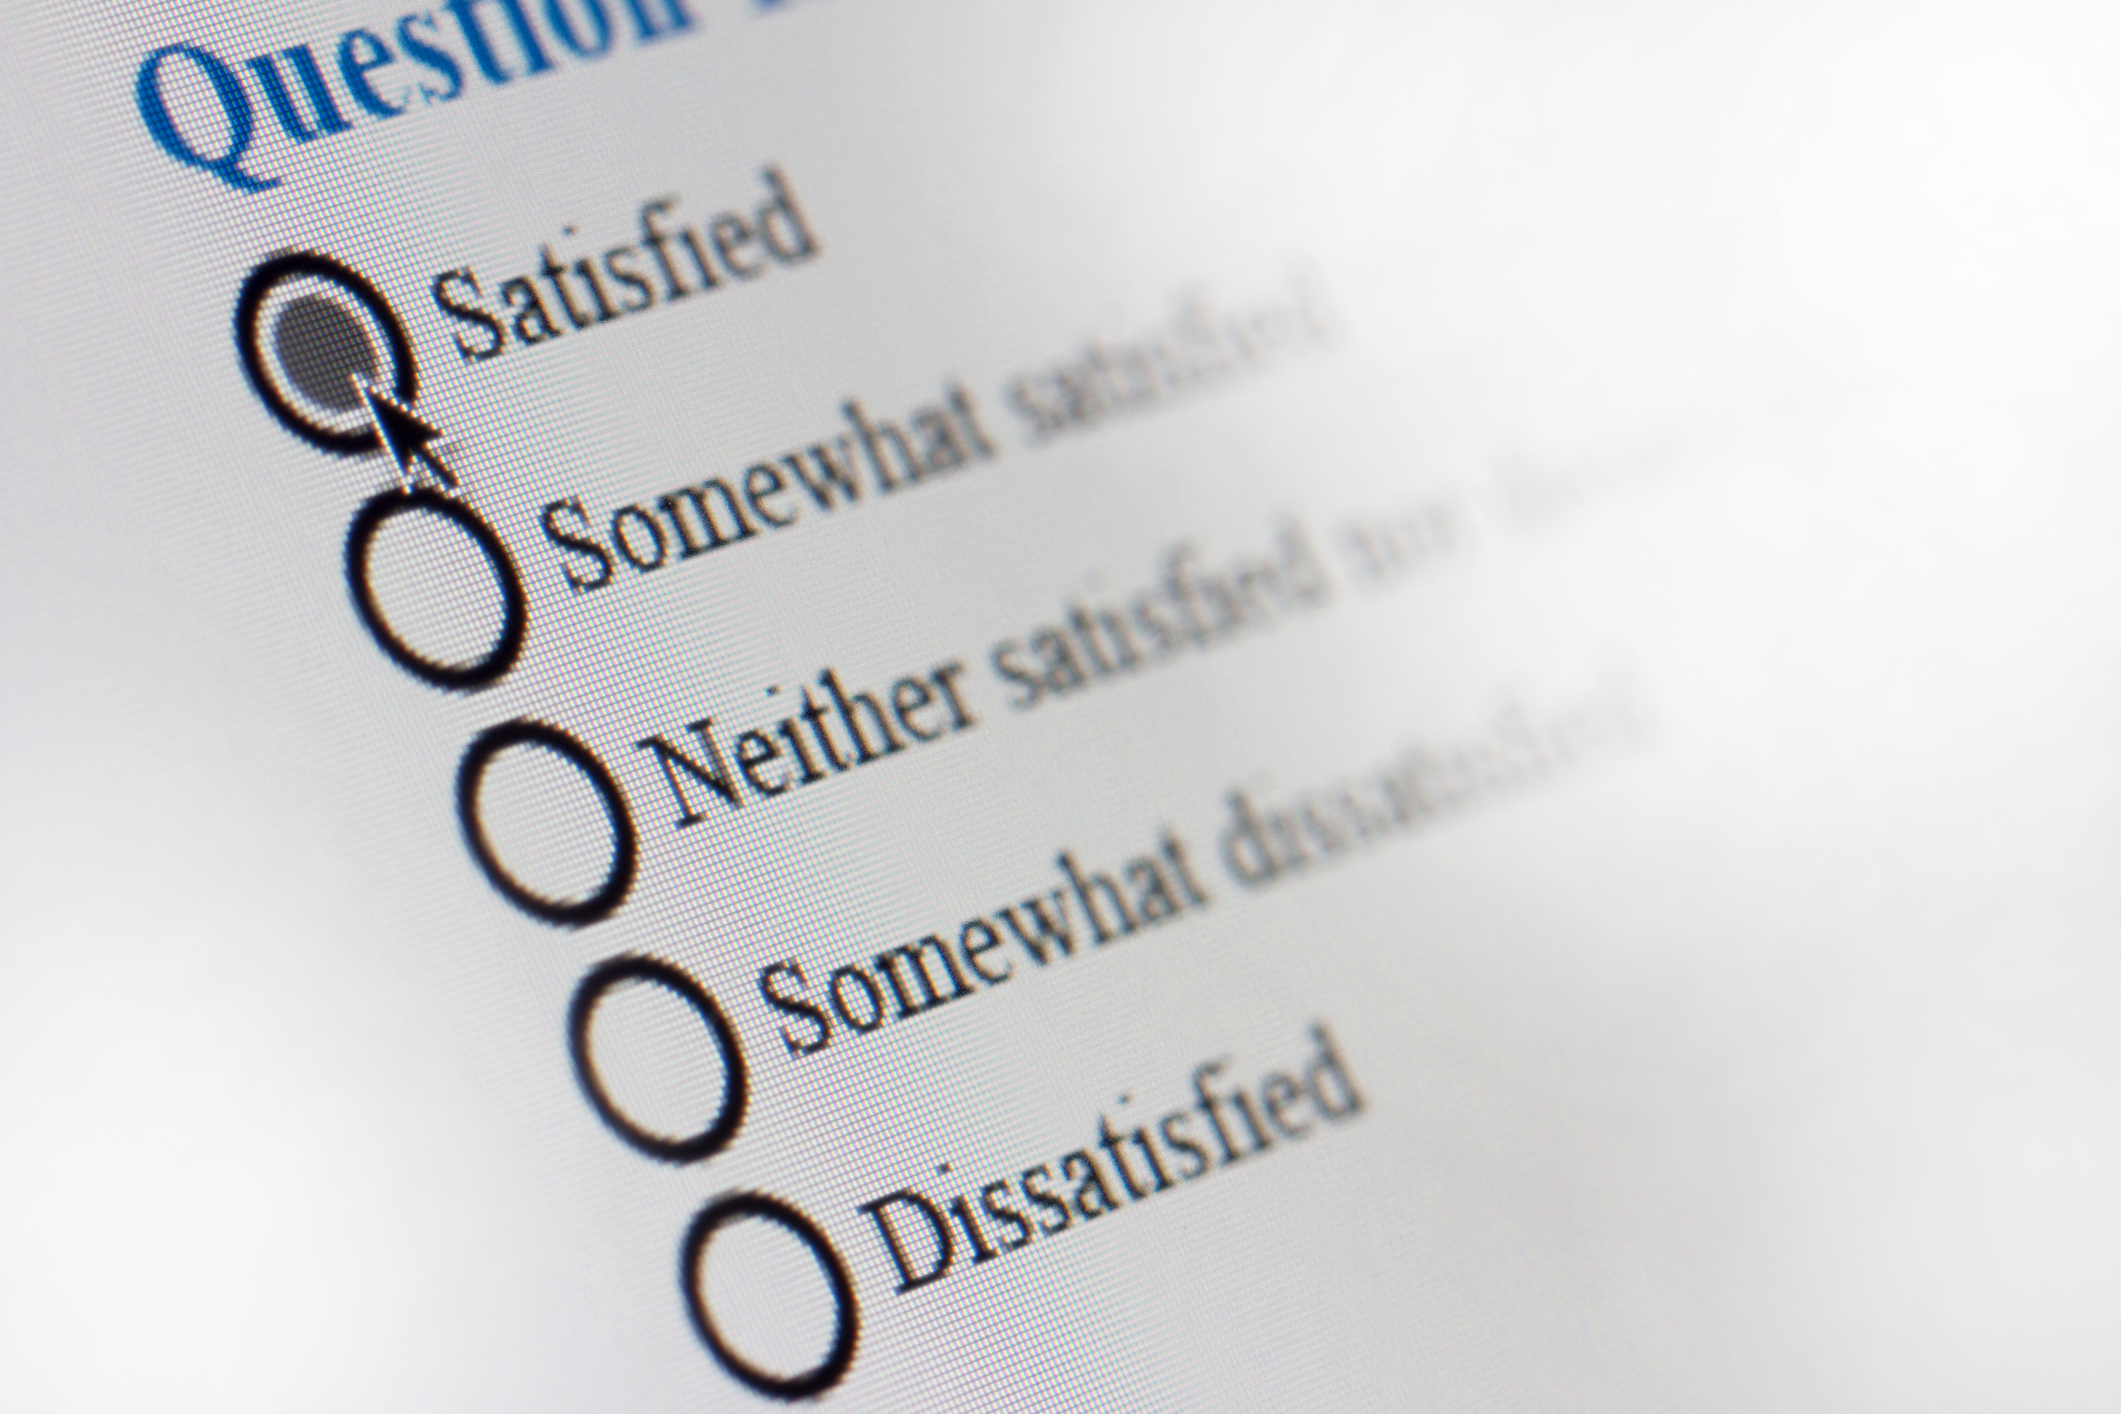 Sample Intranet Survey for Employees Including Guidance, Tips, Links ...